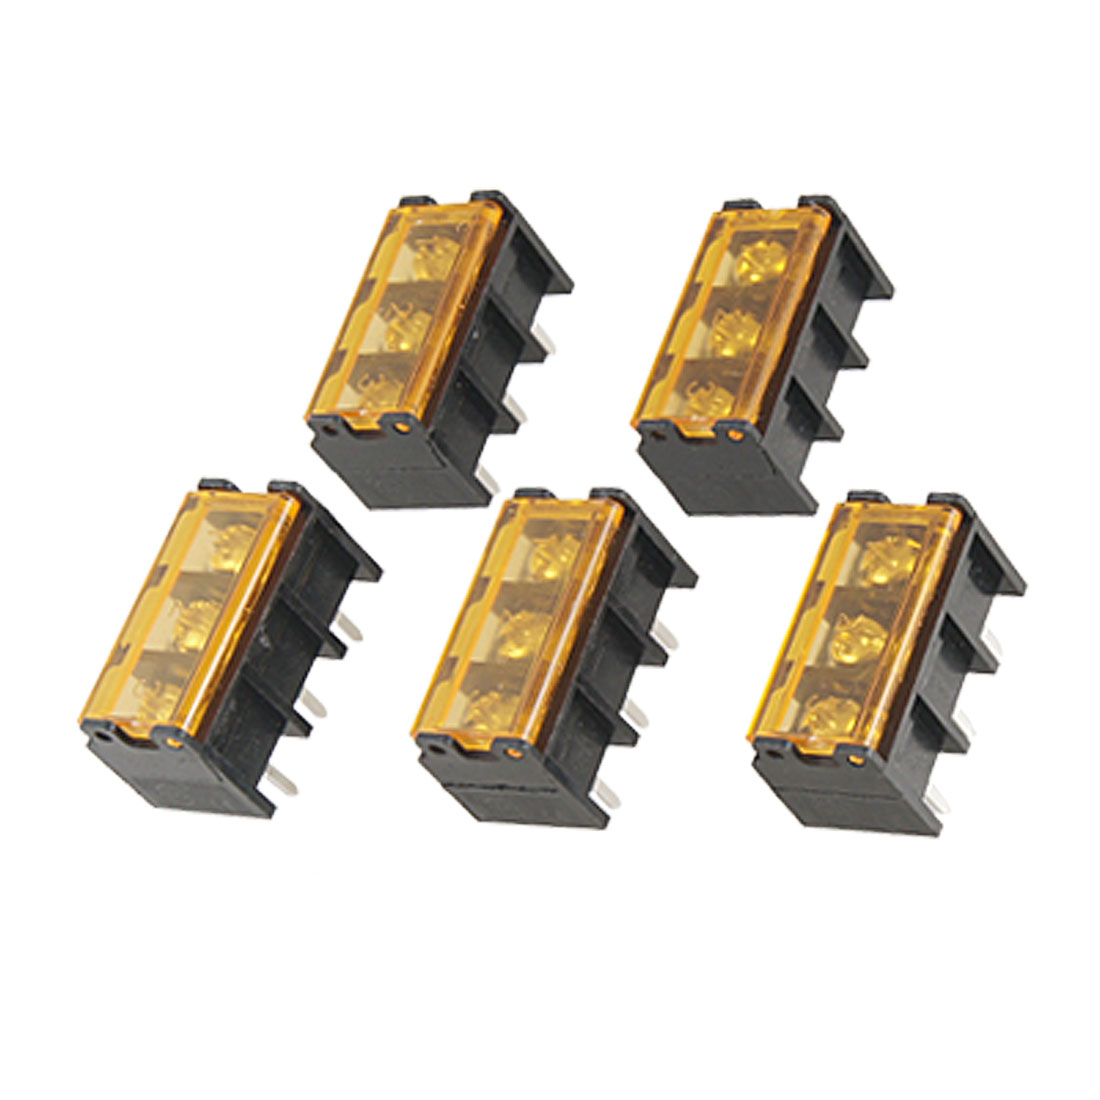 5 Pcs 3 Position Covered Screw Barrier Terminal Strip Block 300V 30A